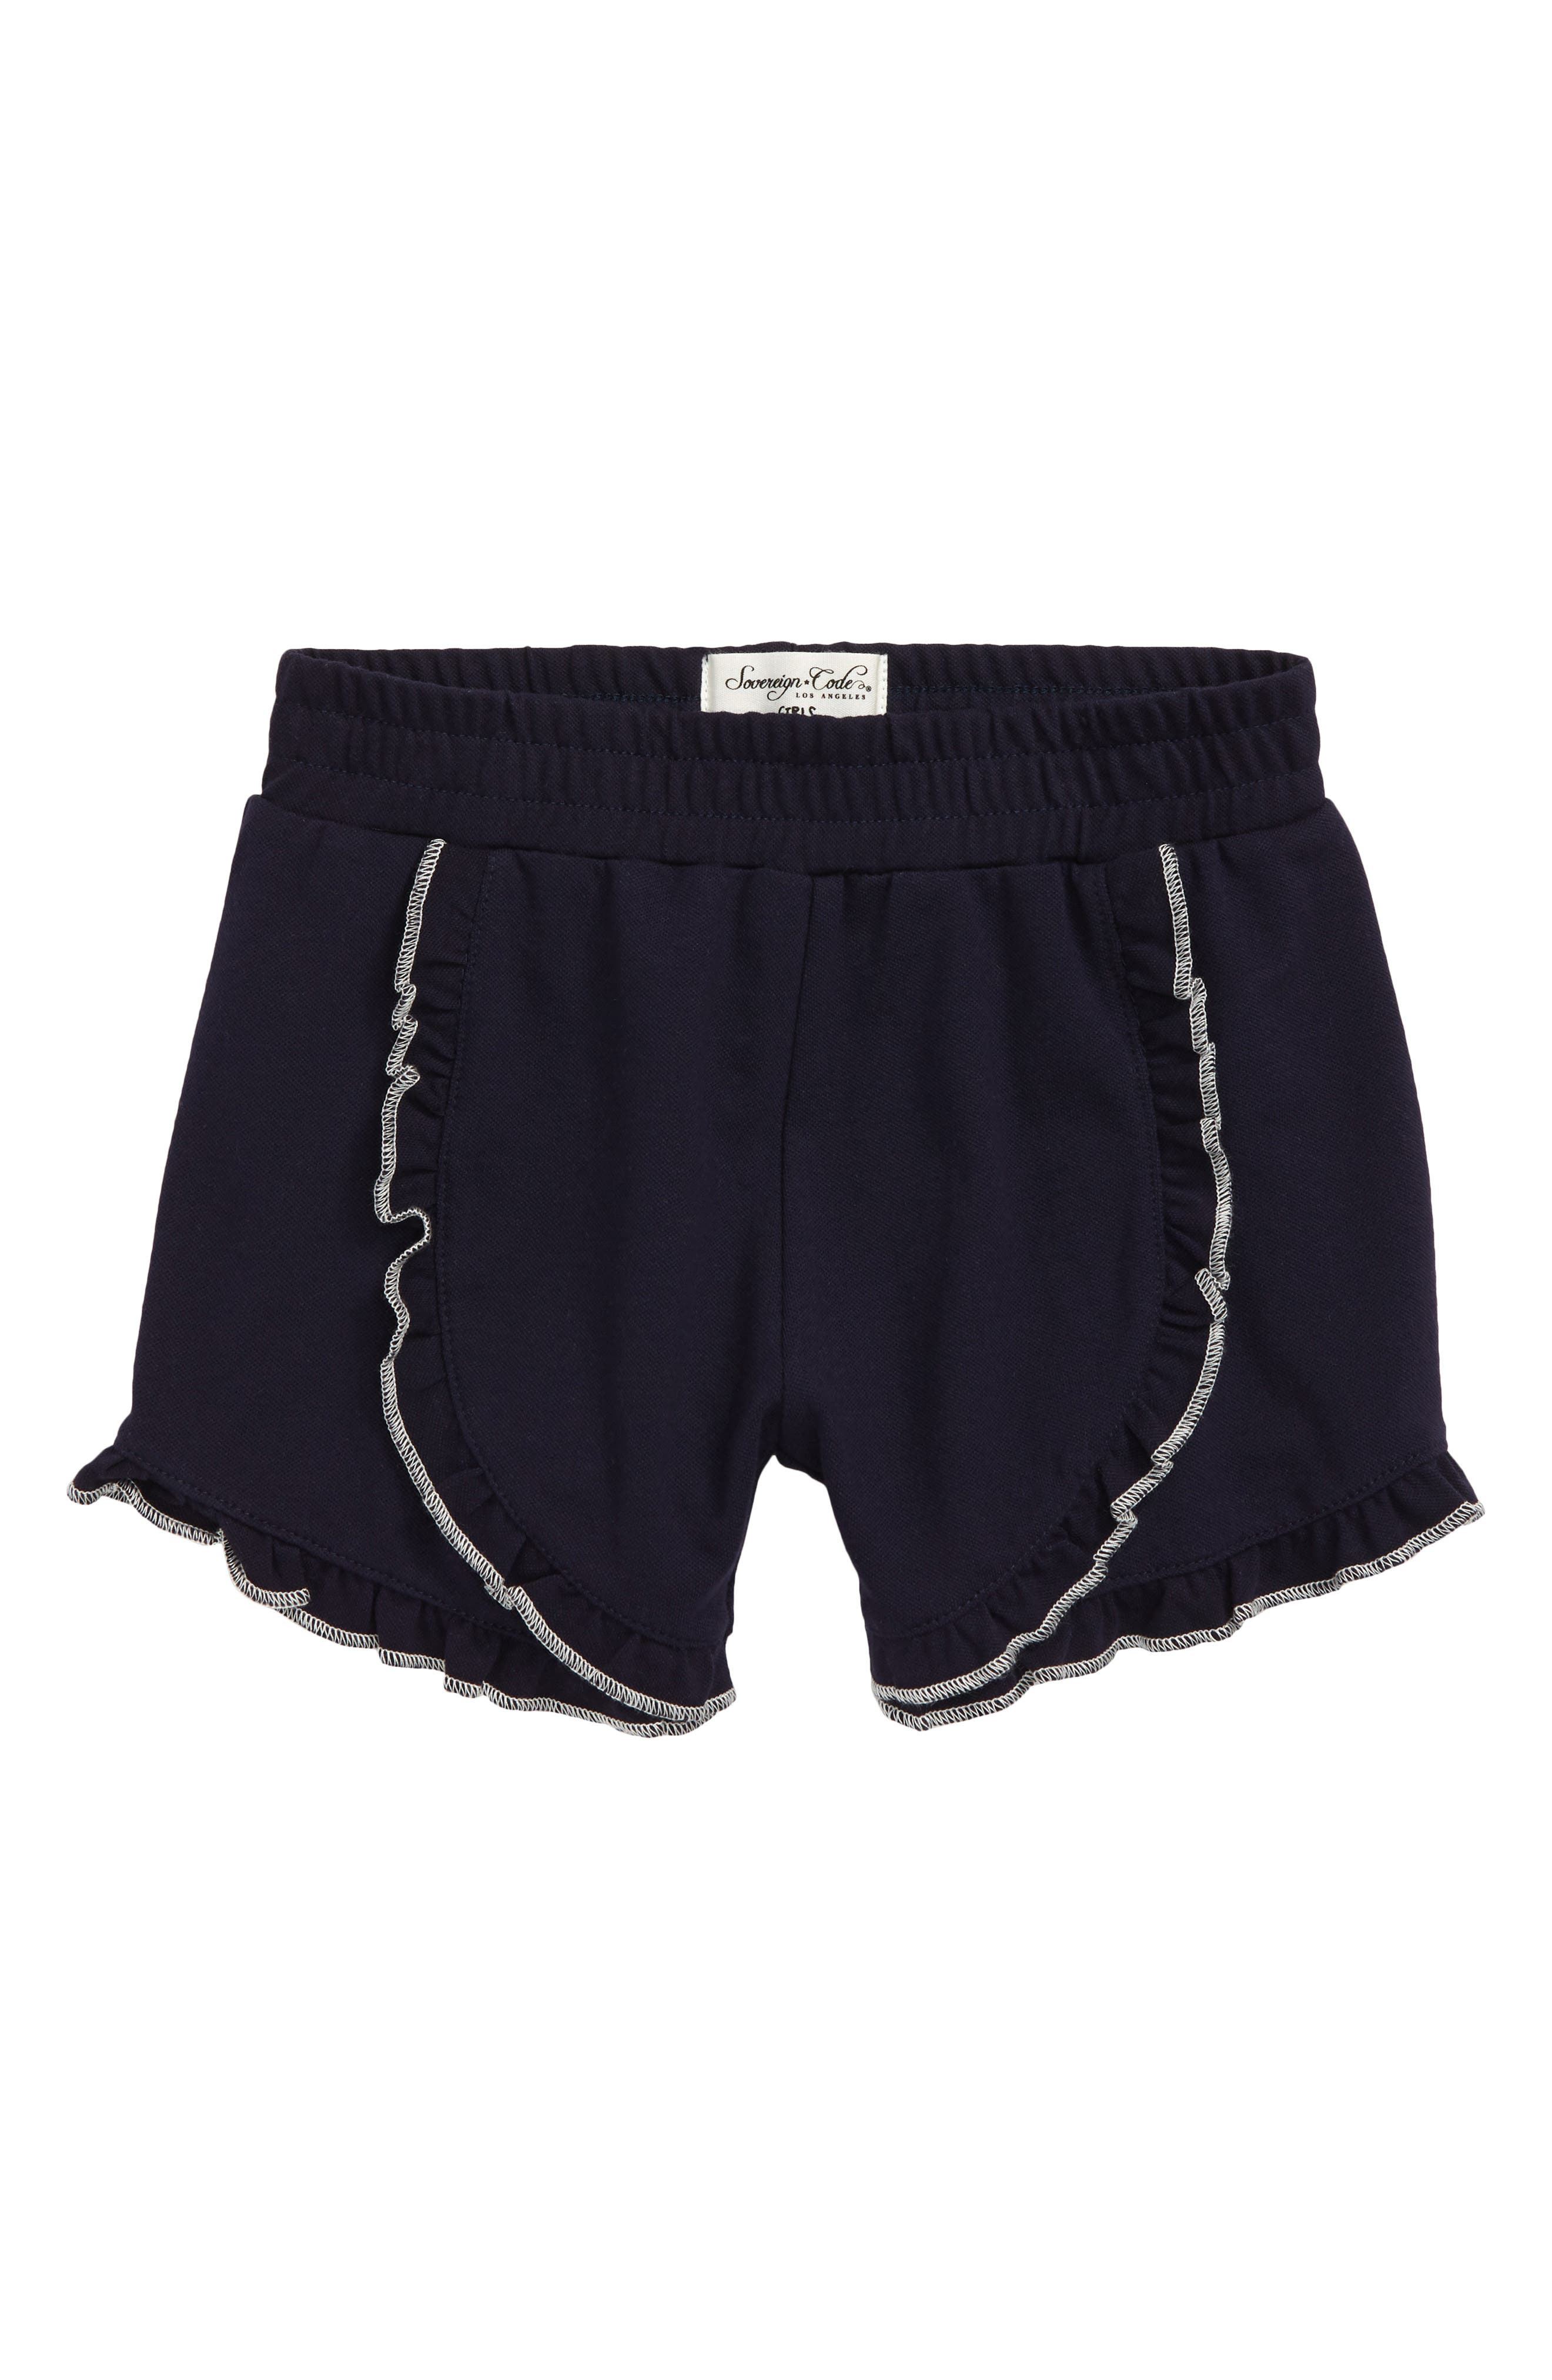 Toddler Girls Sovereign Code Dahlia Ruffle Shorts Size 3T  Blue